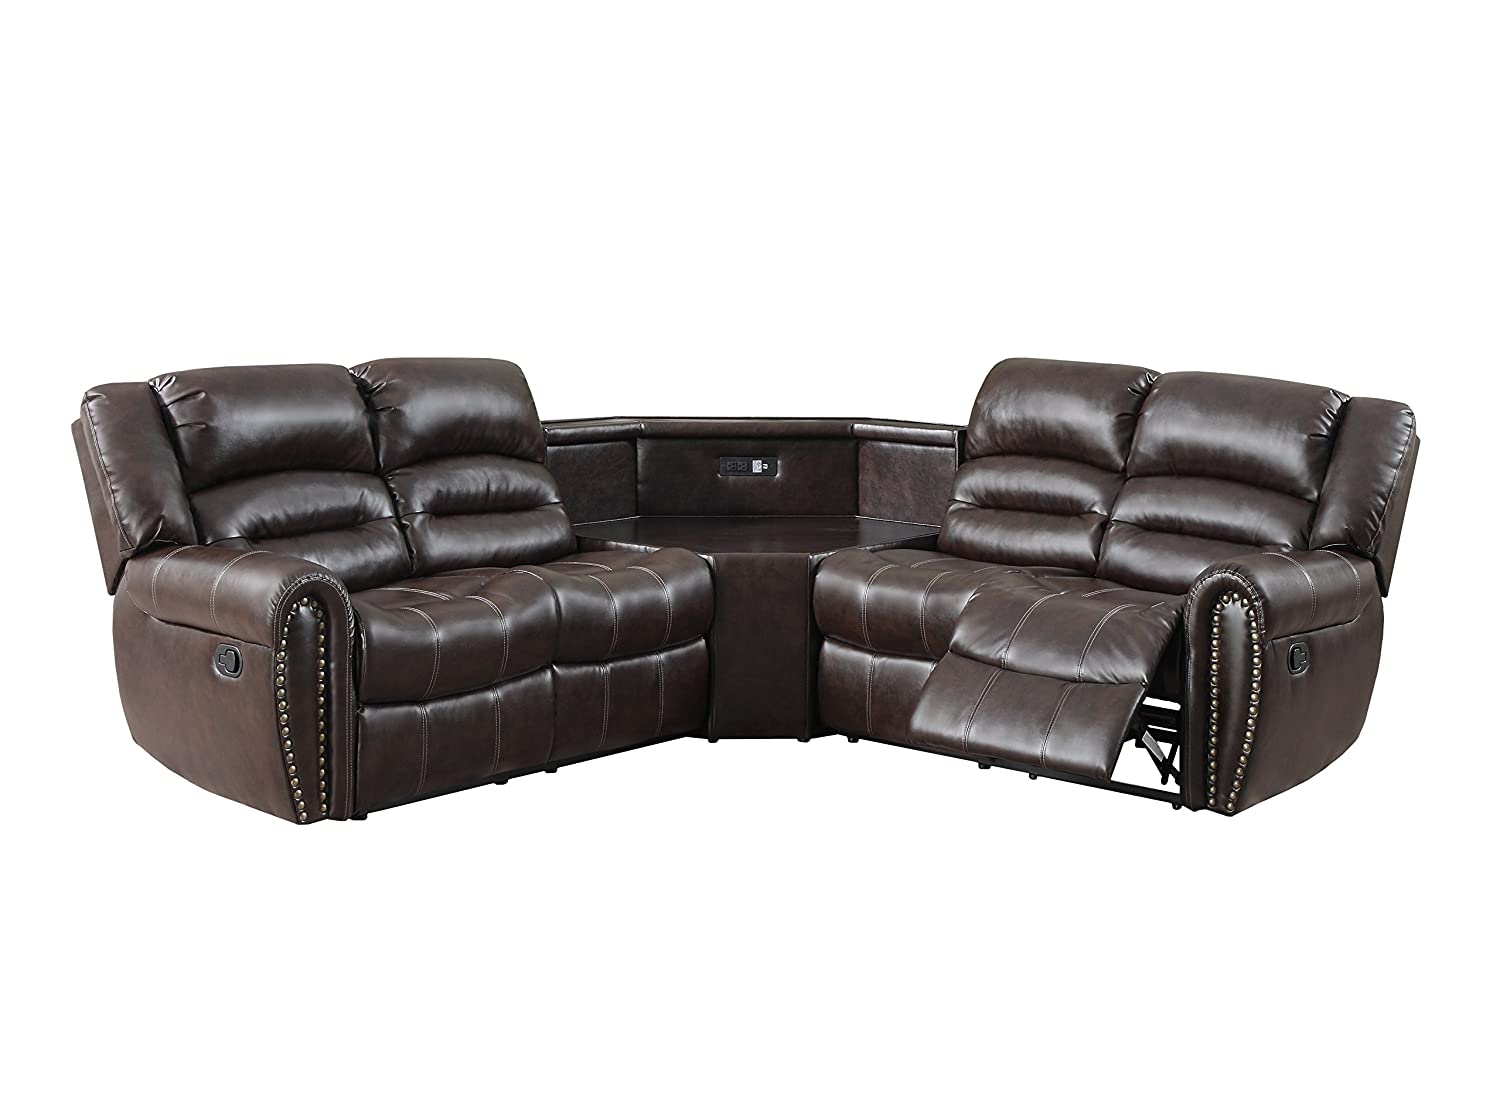 Glory Furniture G685C-SC2 Sectional Sofa with Power Wedge - Cappuccino -  3 boxes